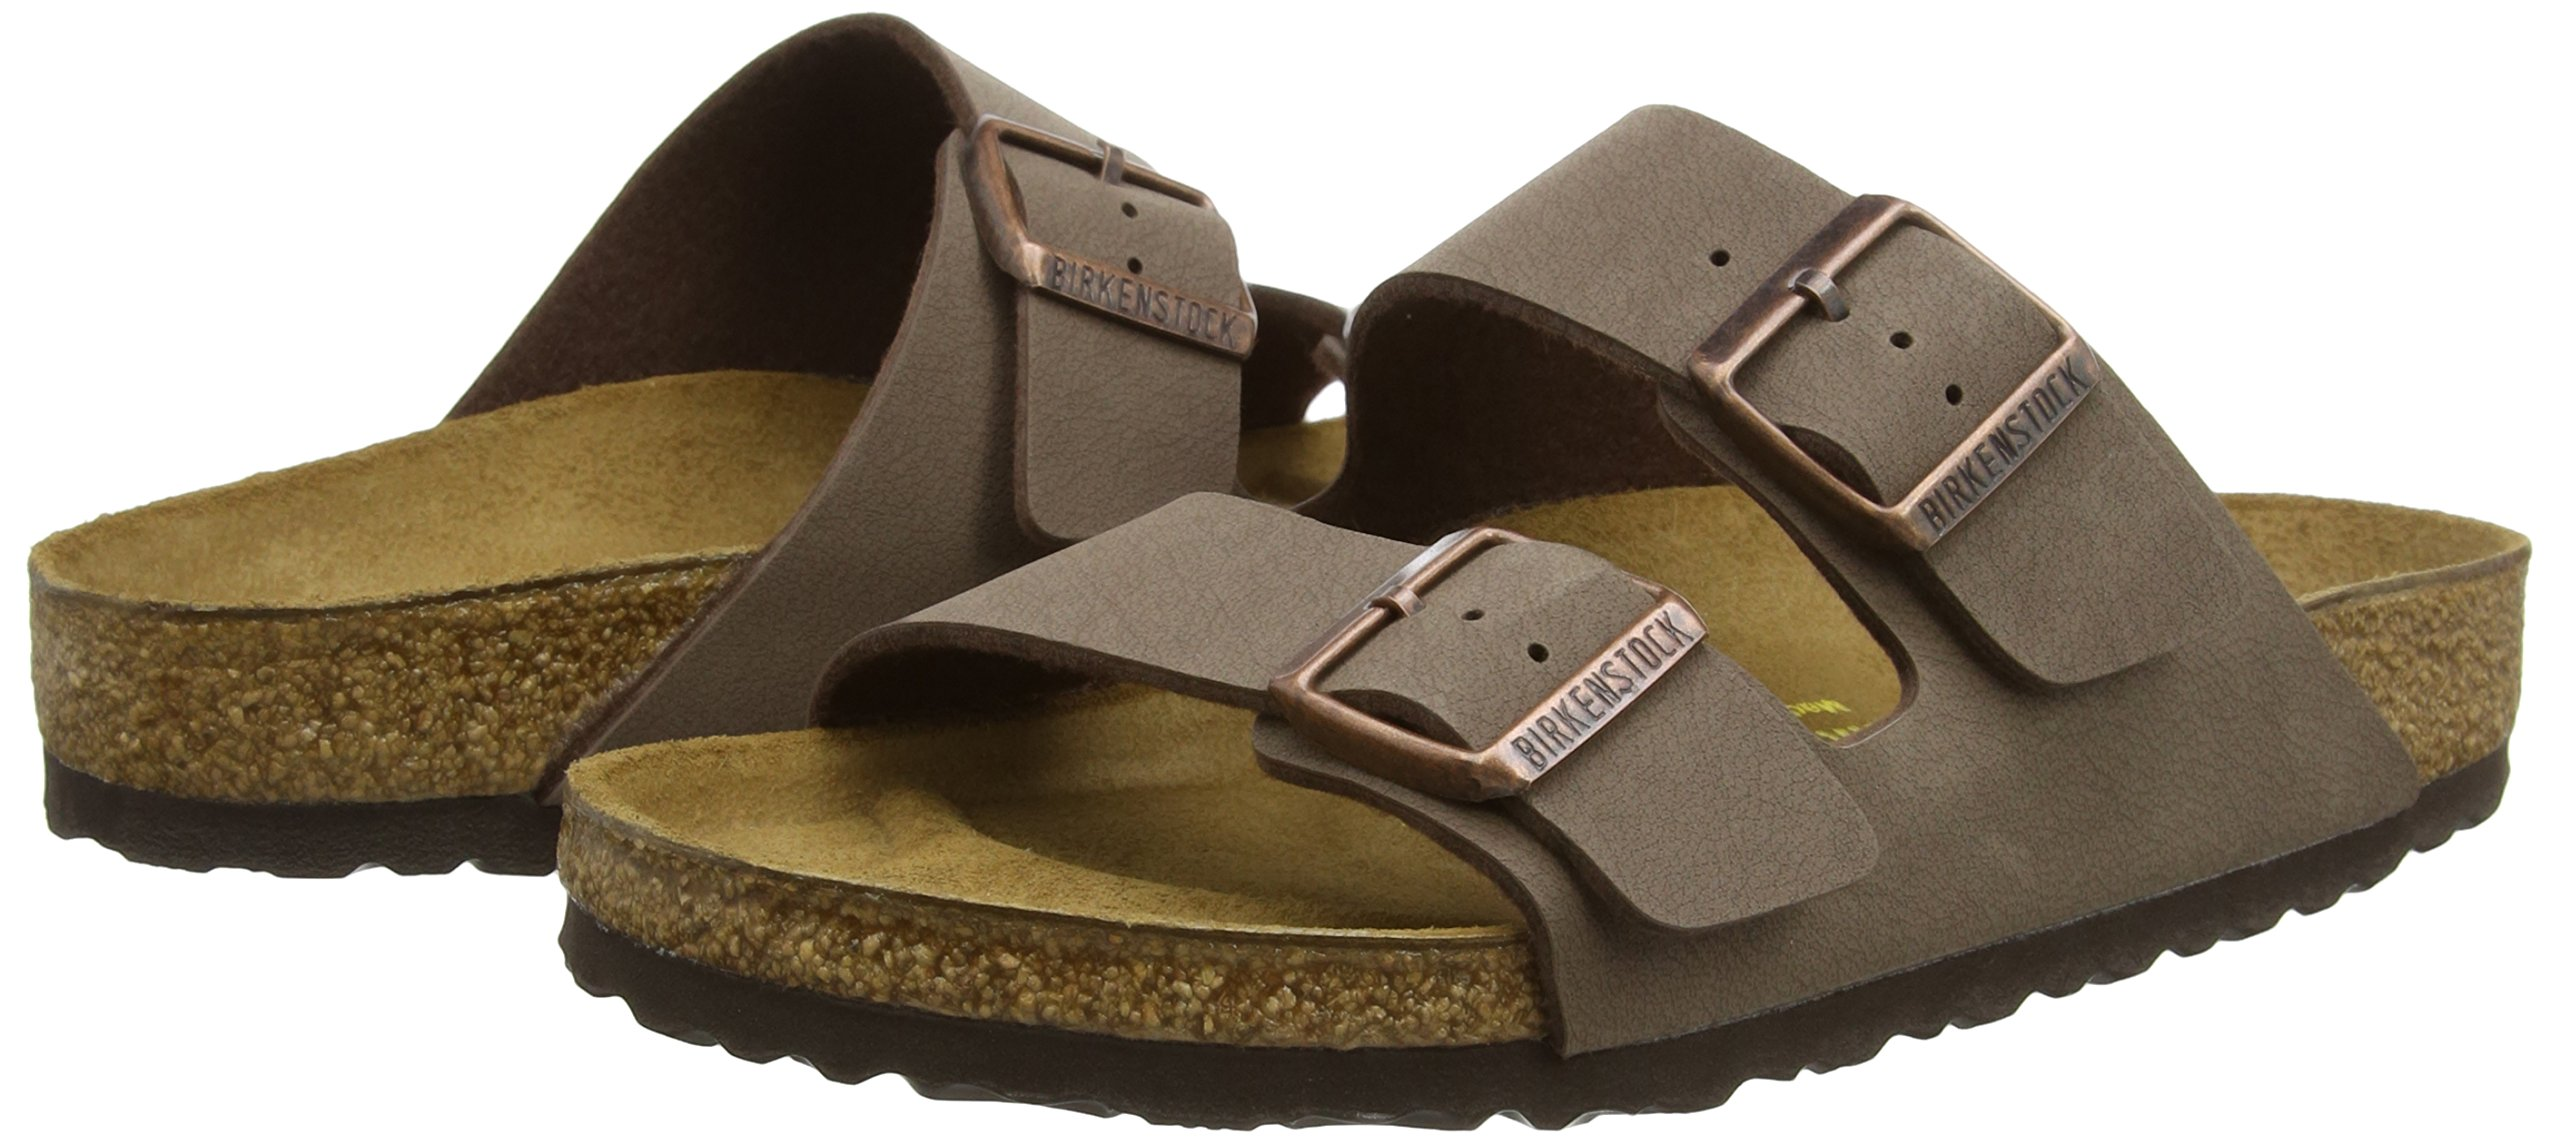 833cd6980c5 Birkenstock Sandals Rio On Clearance Leather Sandals Women